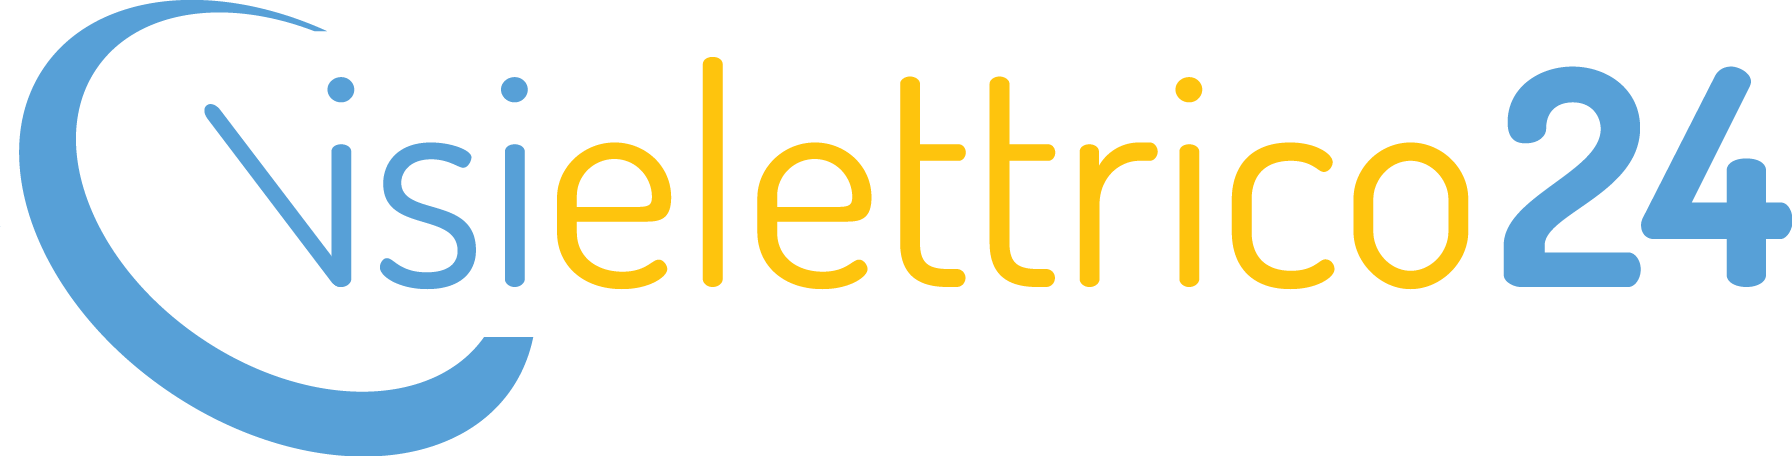 Software gestionale materiale elettrico